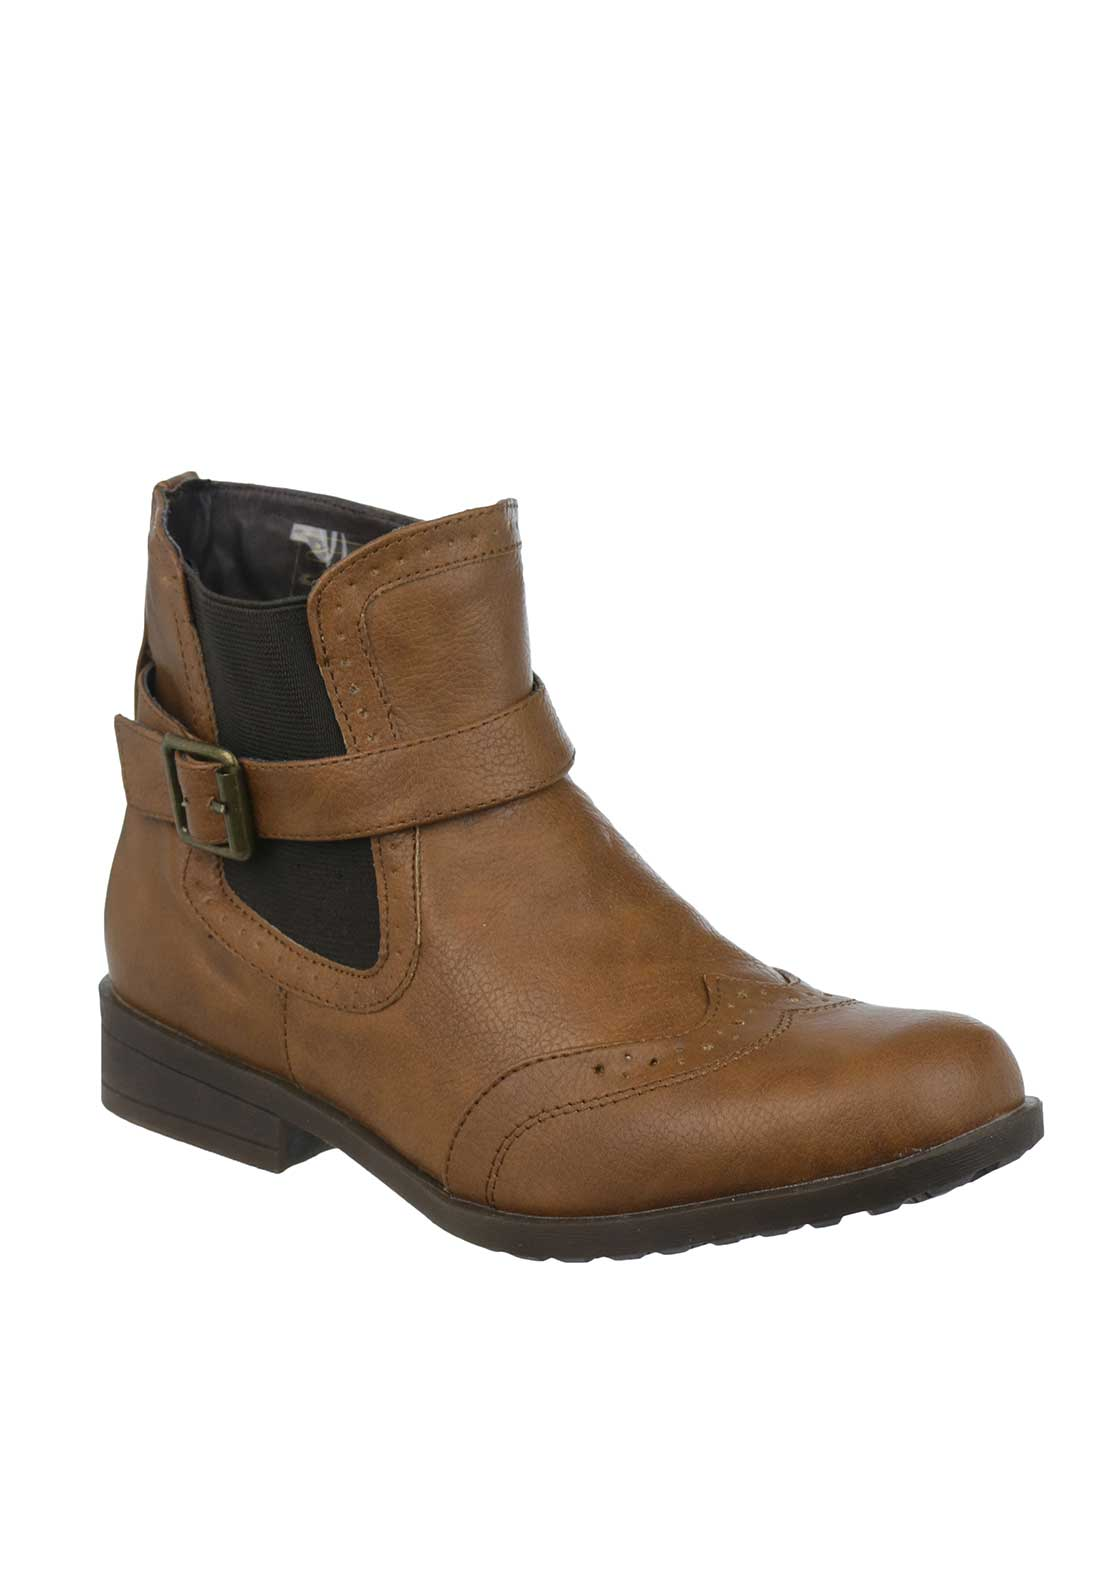 Sprox Chelsea Boot, Tan